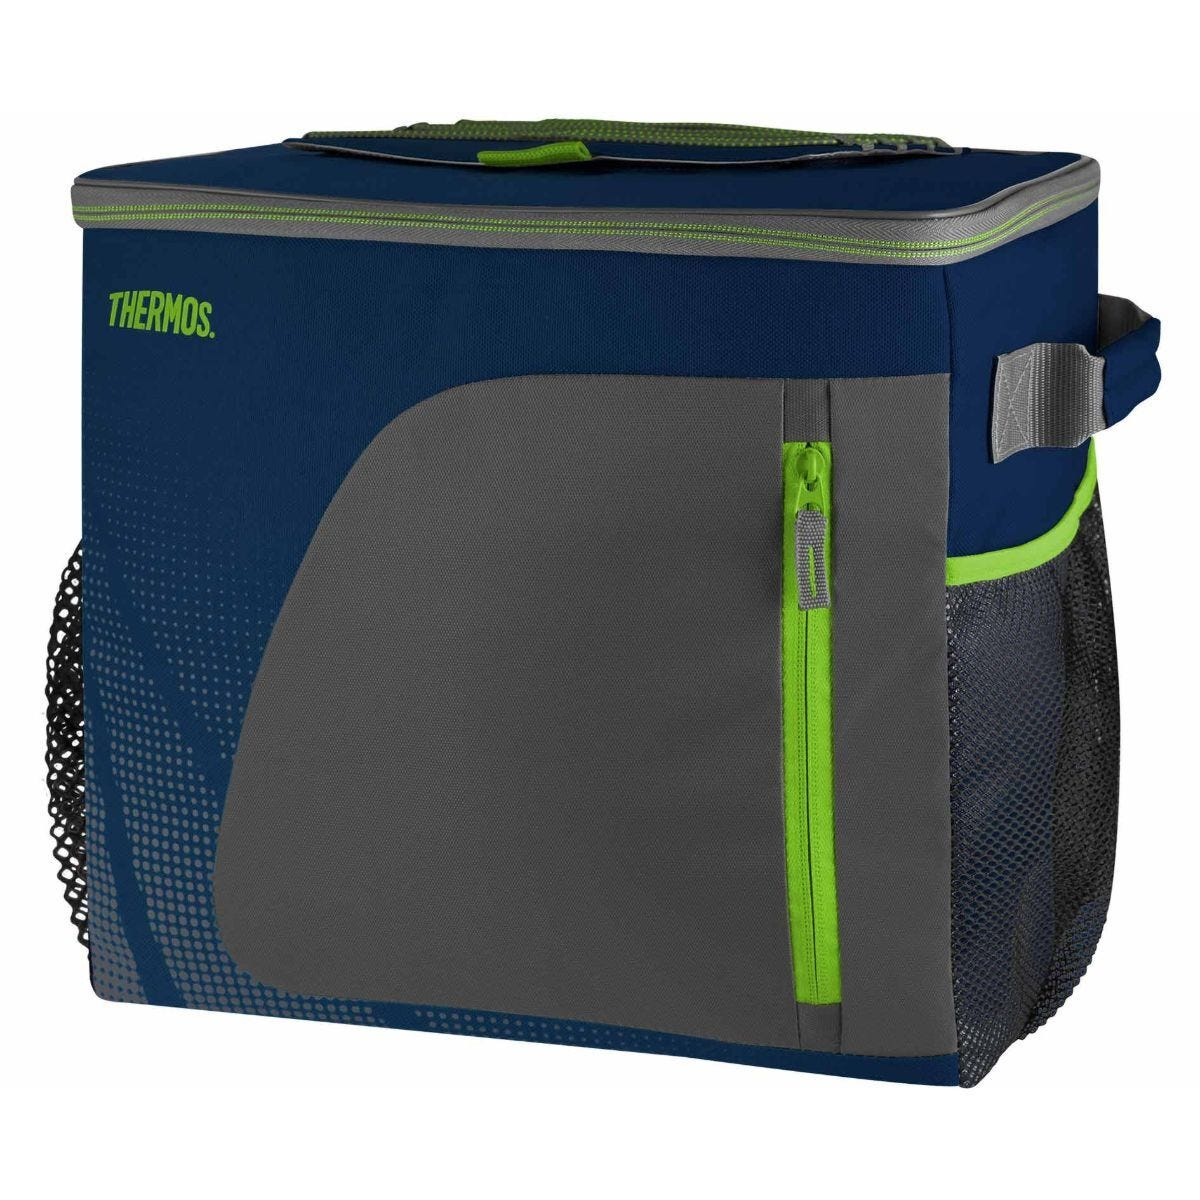 Thermos Radiance 36 Can Cooler Bag